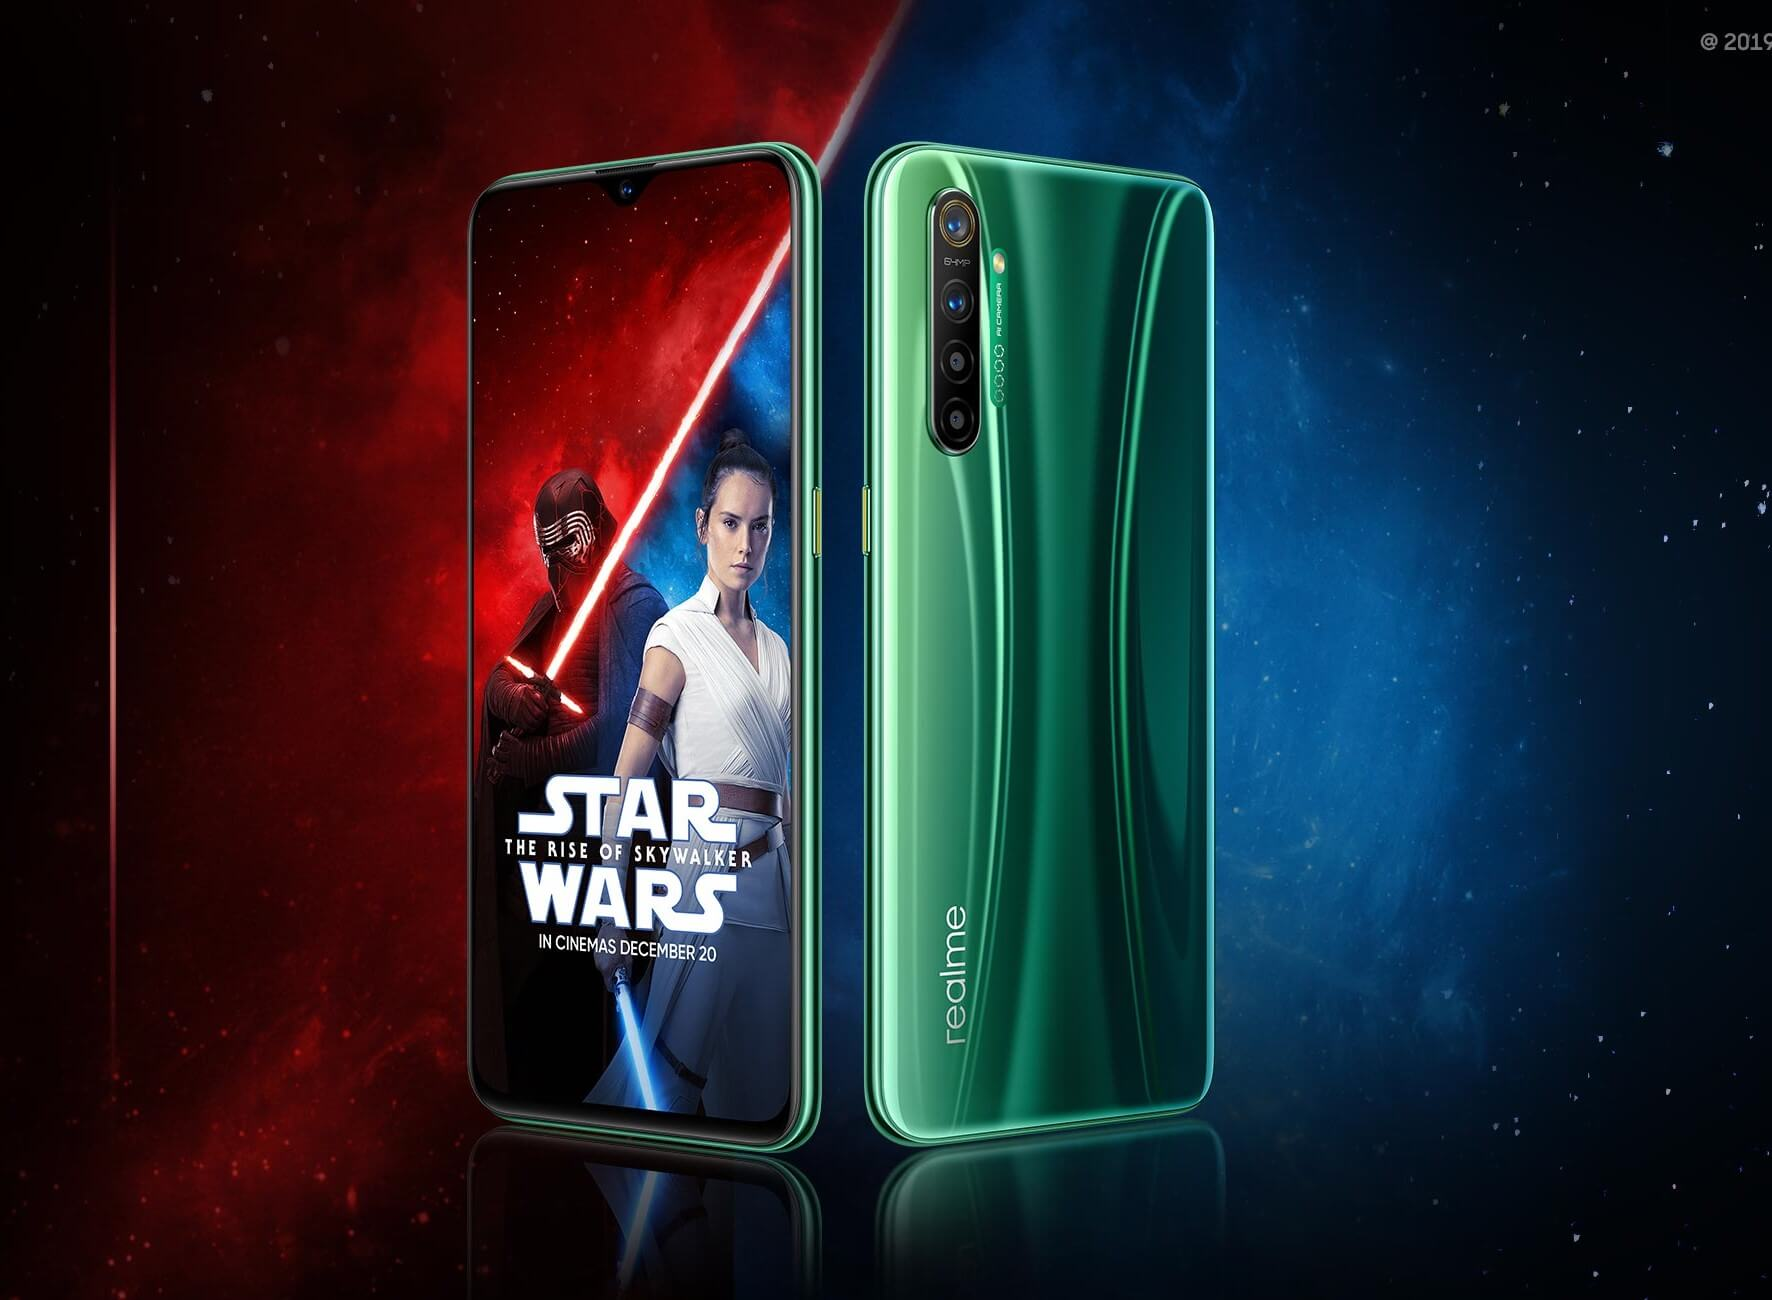 realme x2 smarphone price and features gaming hindi